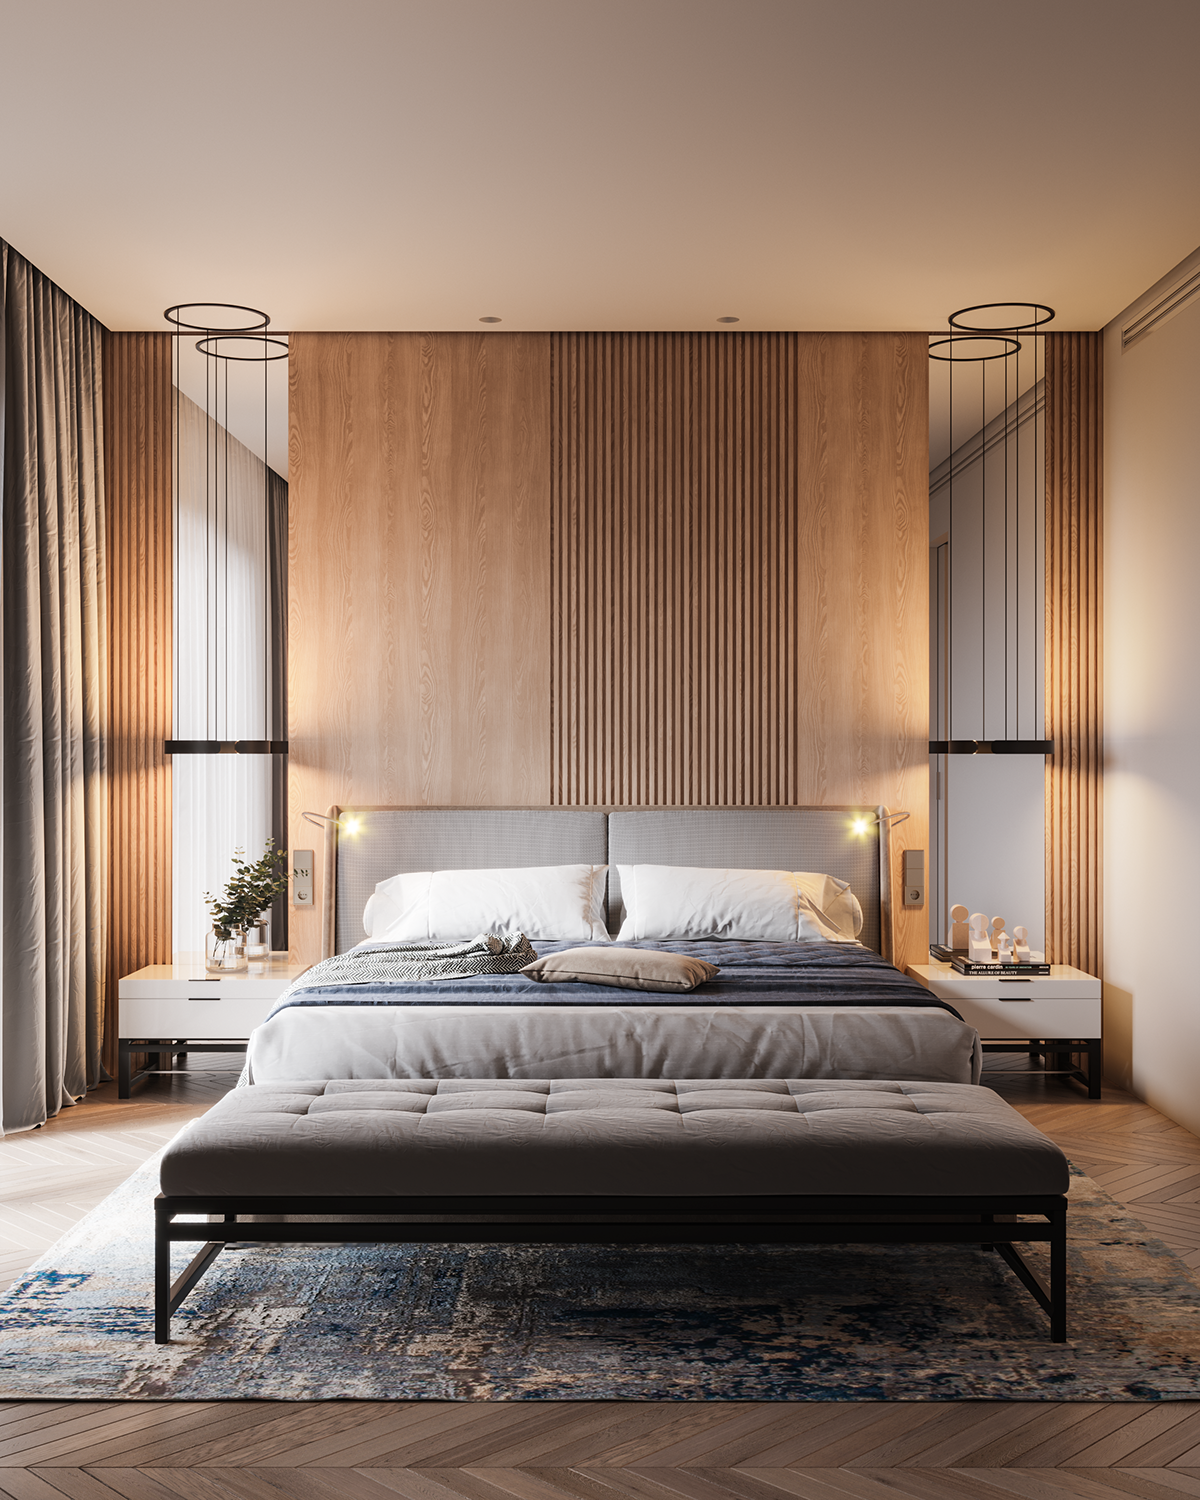 Bedroom In Contemporary Style On Behance: Luxurious Bedrooms, Modern Bedroom